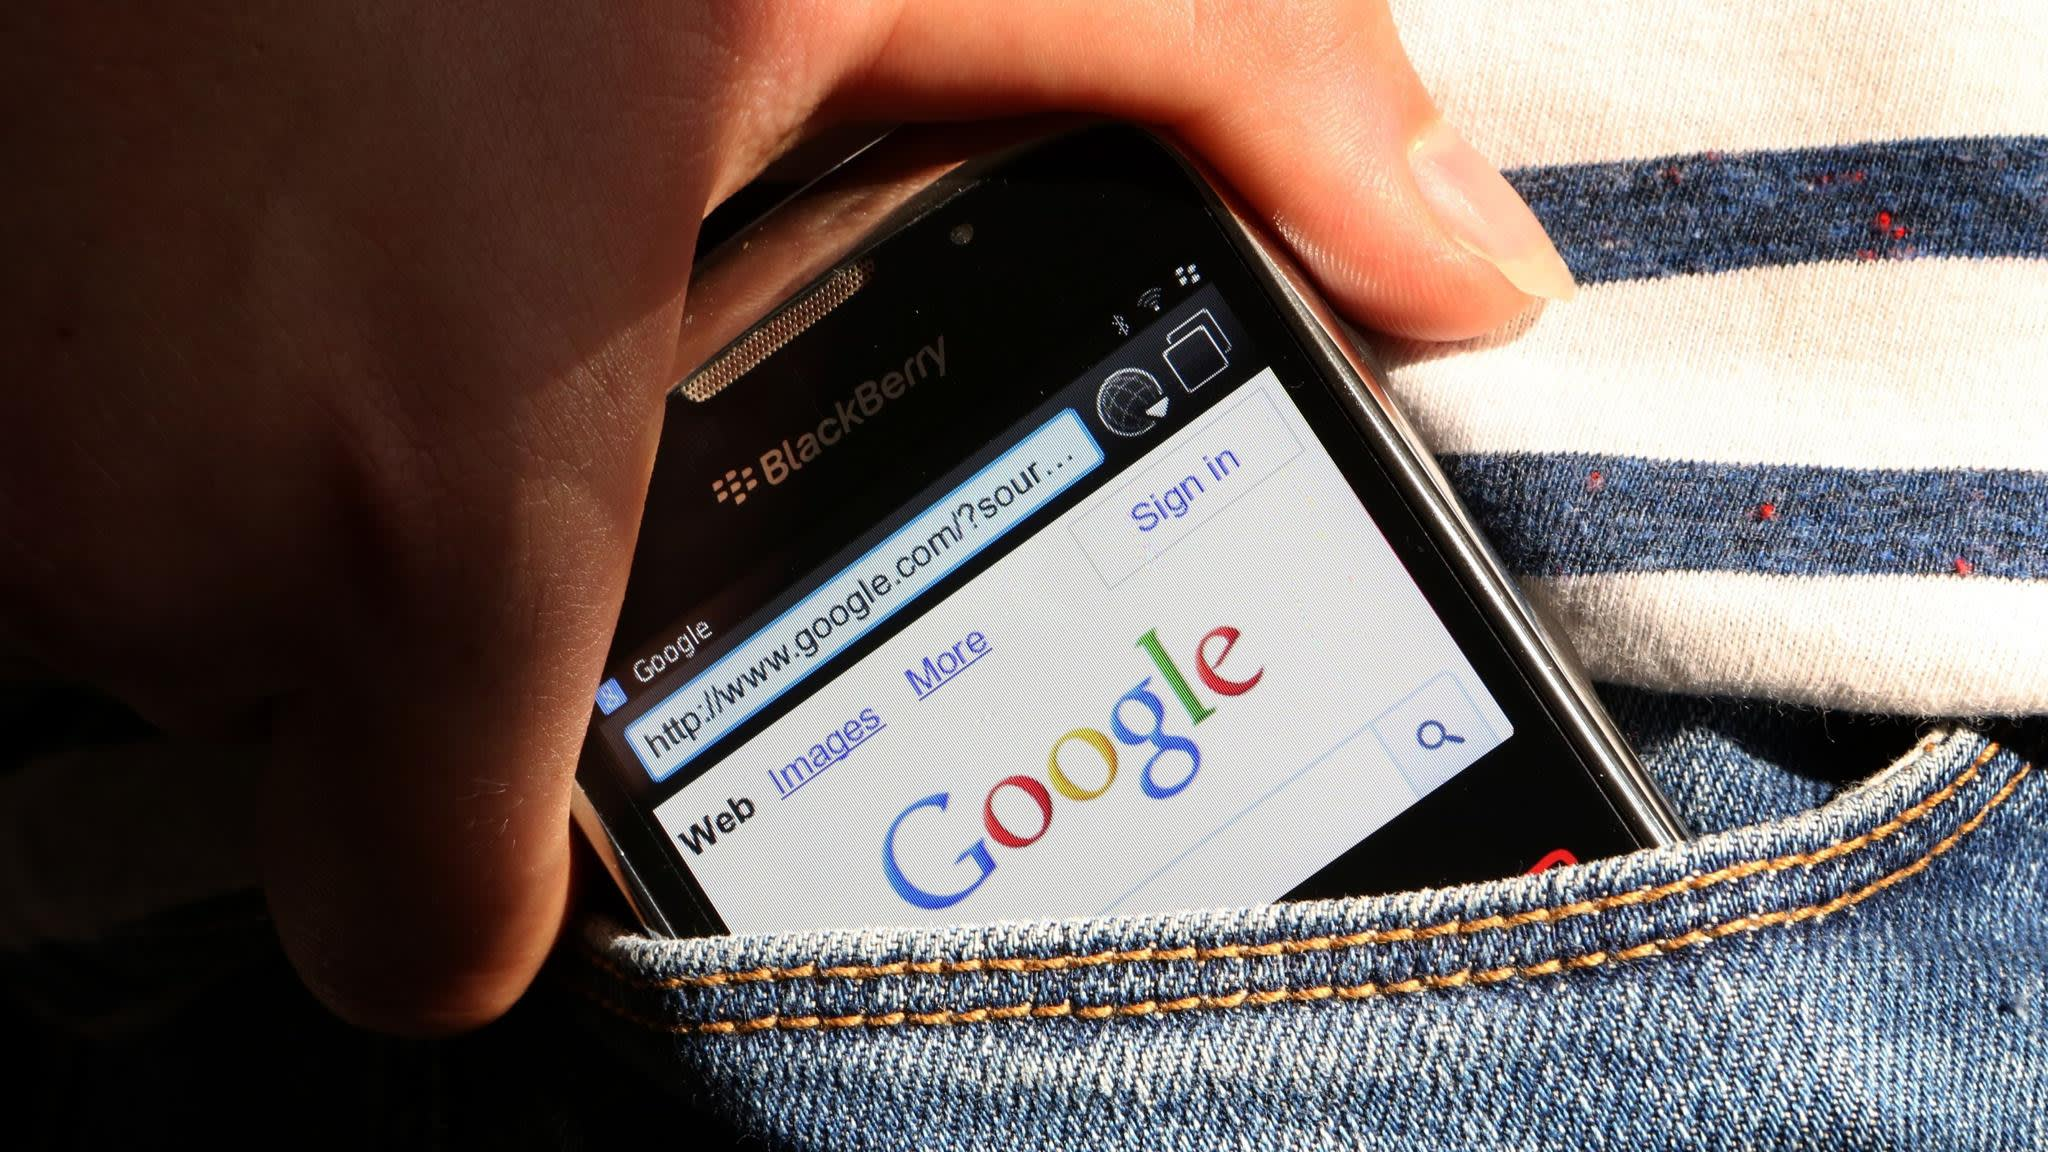 Europe to accuse Google of illegally abusing its dominance | Financial Times